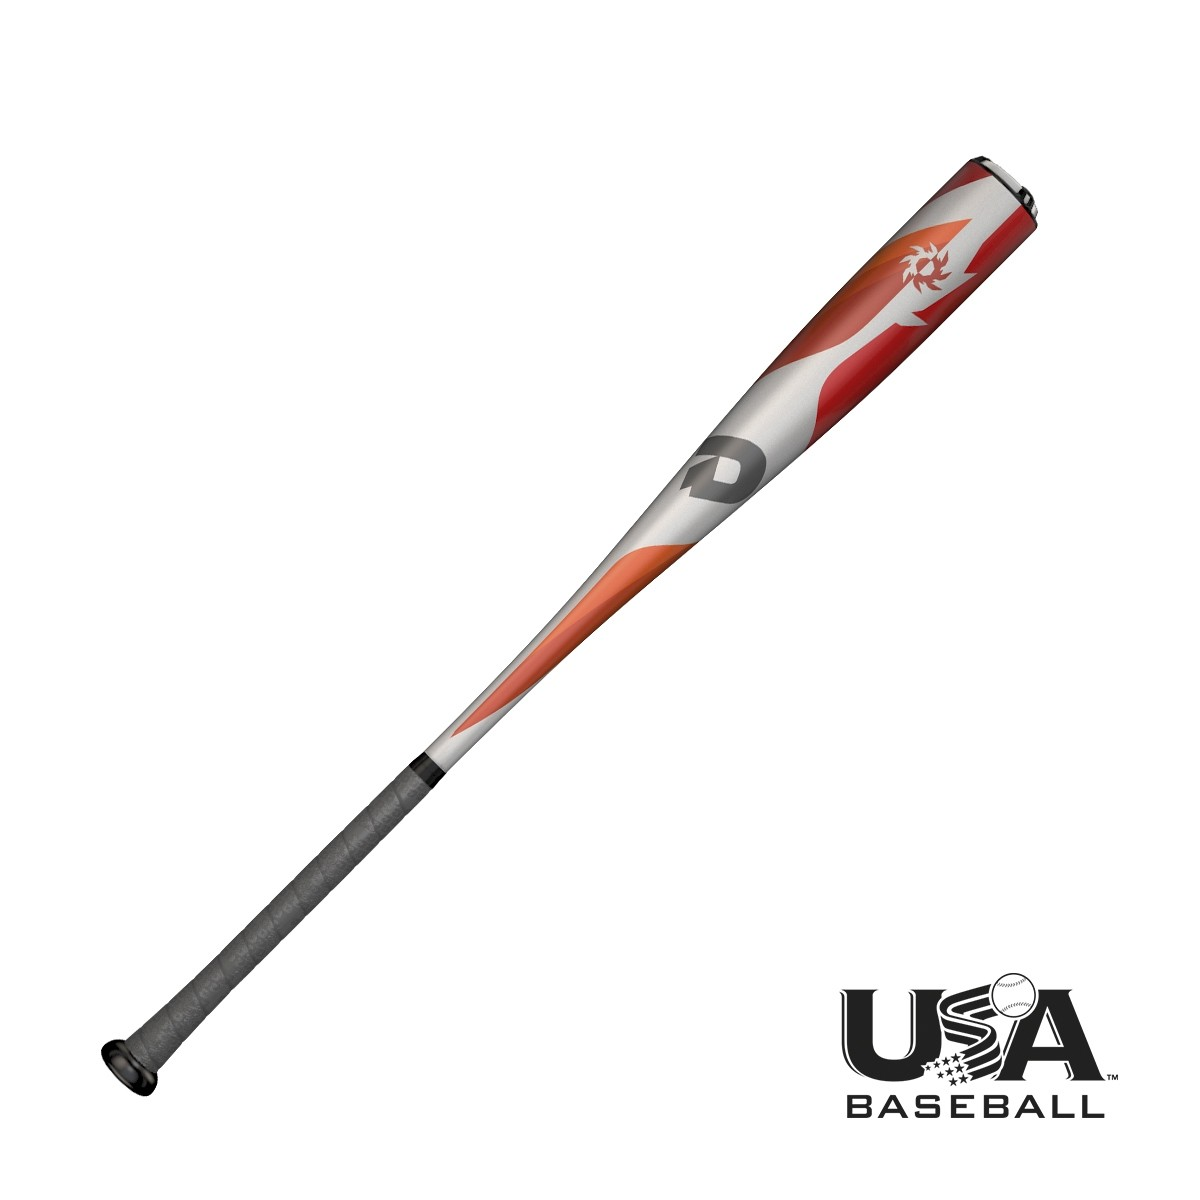 demarini-2018-voodoo-one-10-2-5-8-balanced-usa-baseball-bat-32-inch-22-oz WTDXUO22232-18  887768630065 `-10 length to weight ratio 2 5/8 inch barrel diameter Balanced